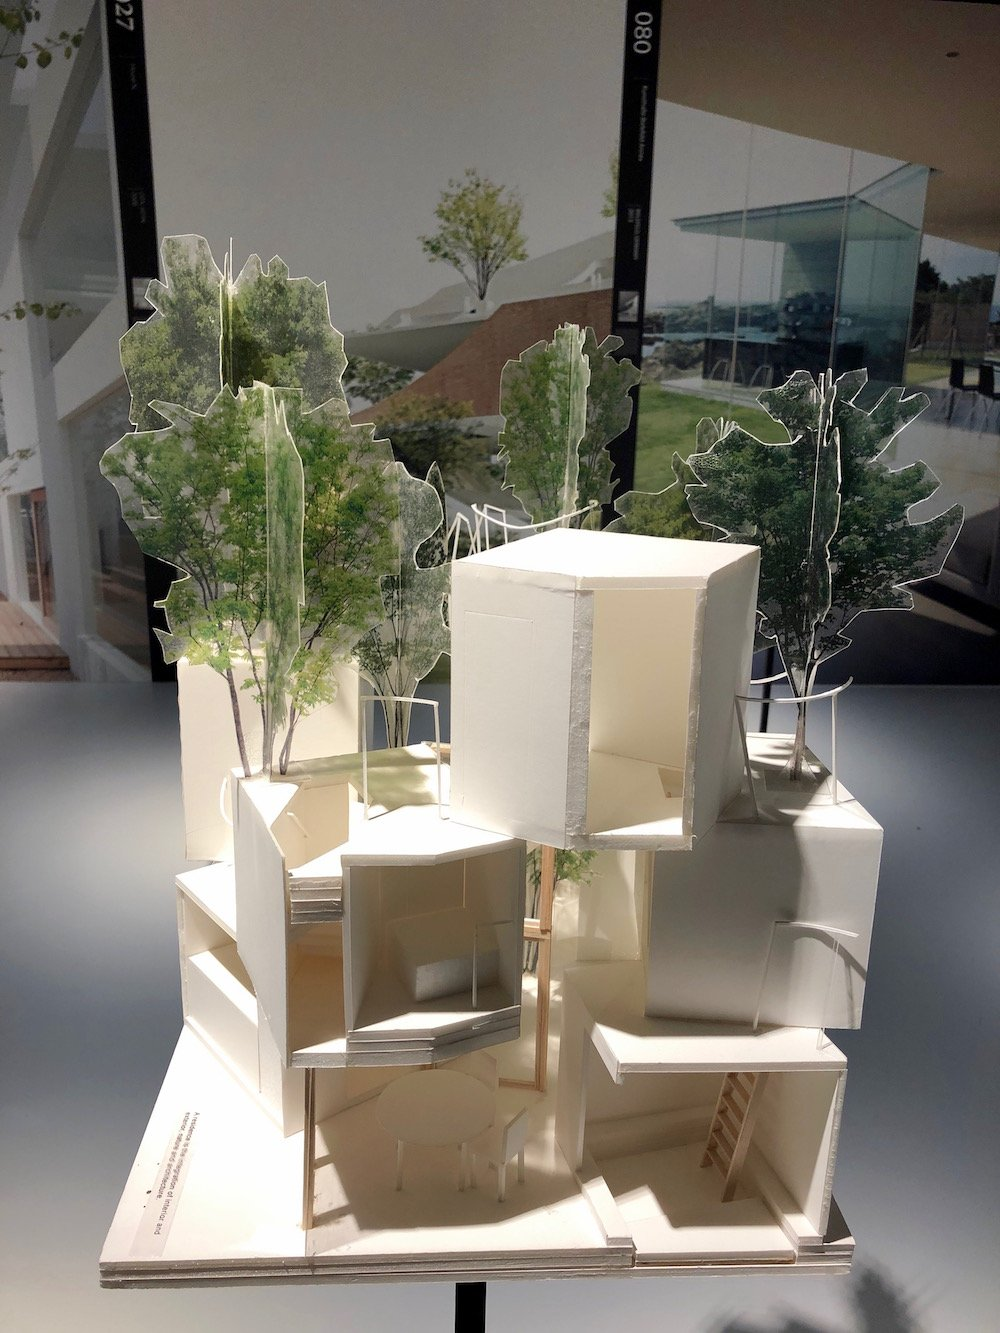 'Future of the Futures', Sou Fujimoto at Japan House London